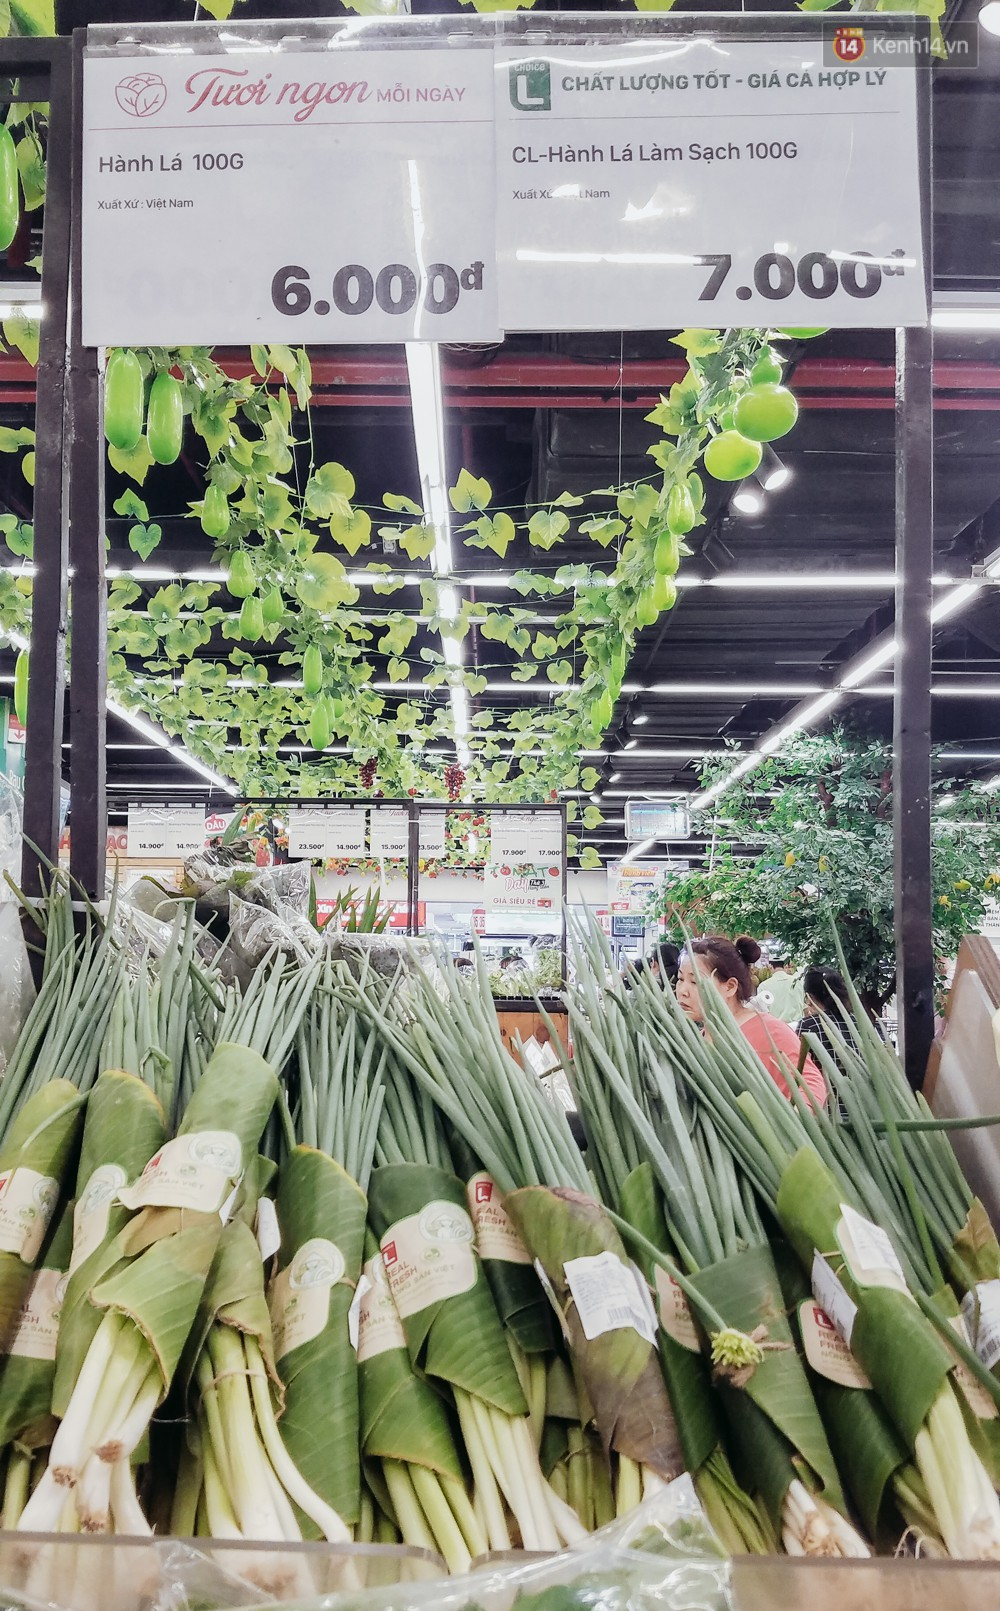 A large supermarket in Saigon used banana leaf wrapped food, customers look to suit your eyes! - Photo 4.